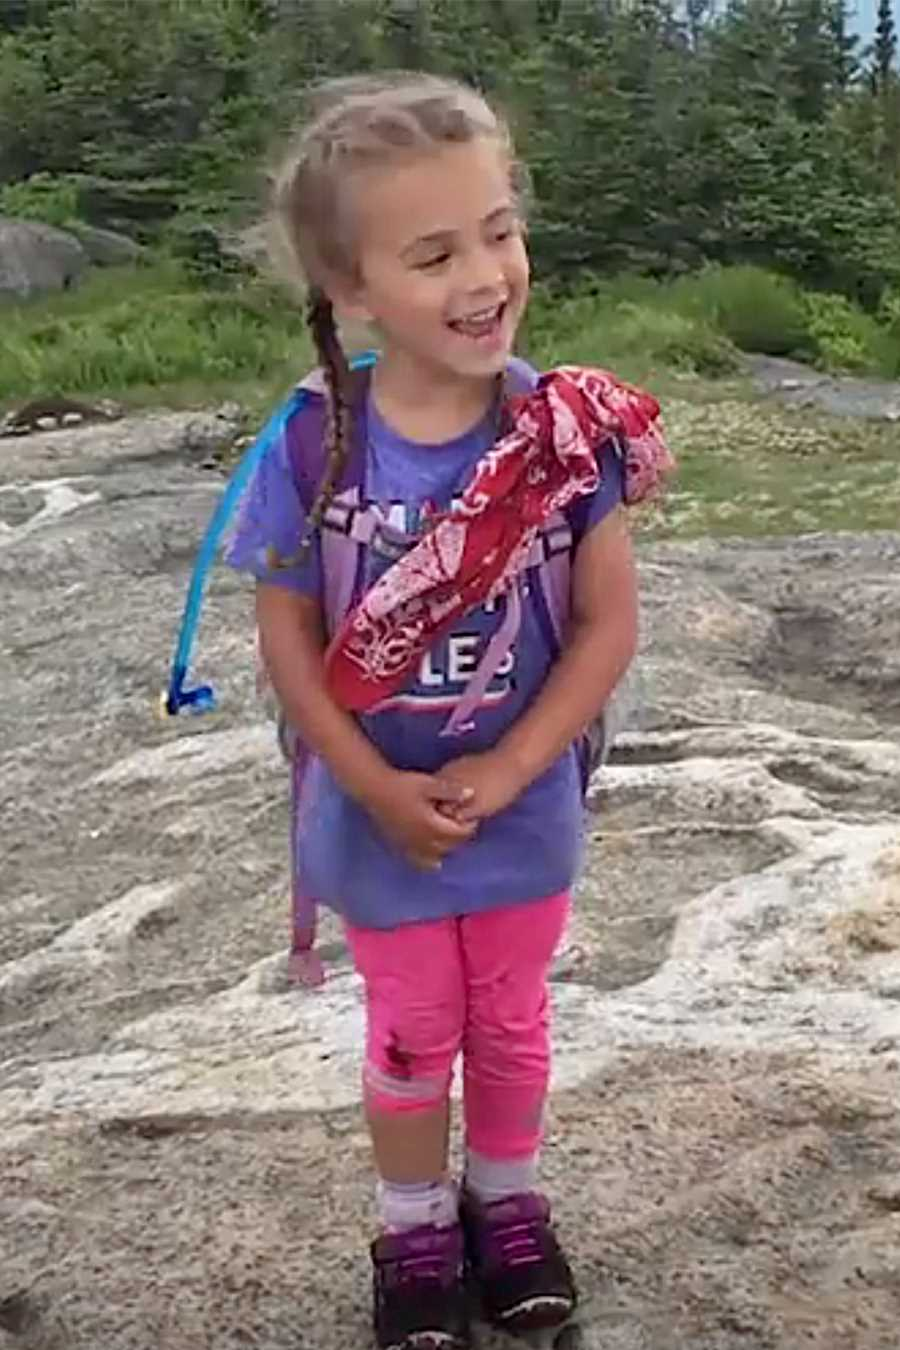 4-Year-Old Girl Becomes Youngest Person to Summit Every Adirondack High Peak to Join the '46ers Club'